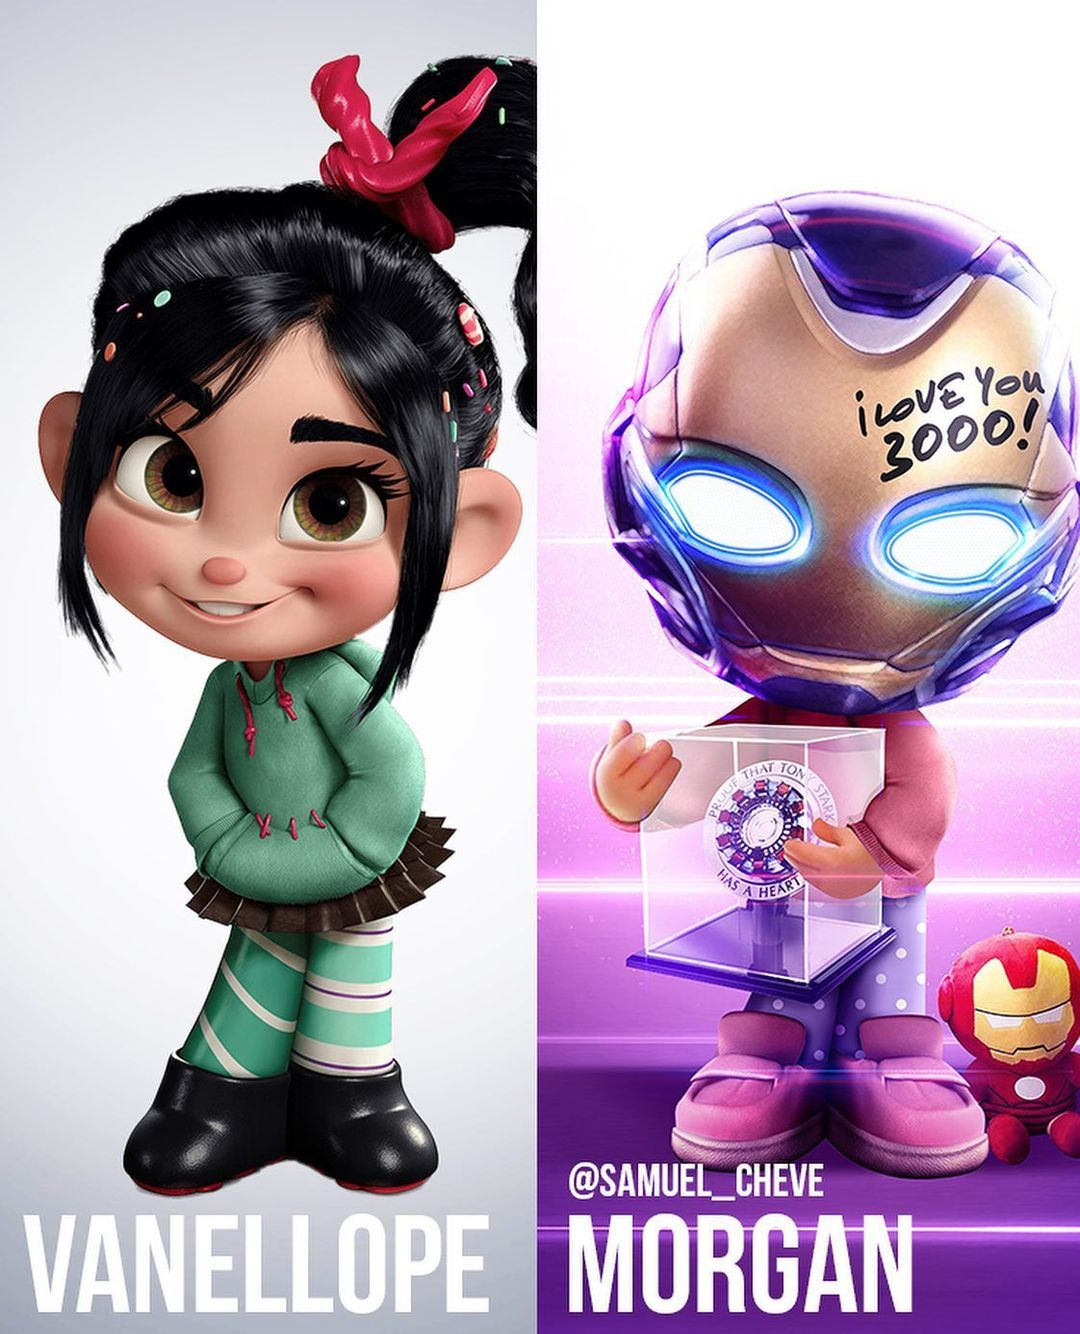 Disney characters reimagined as Marvel and DC icons 59